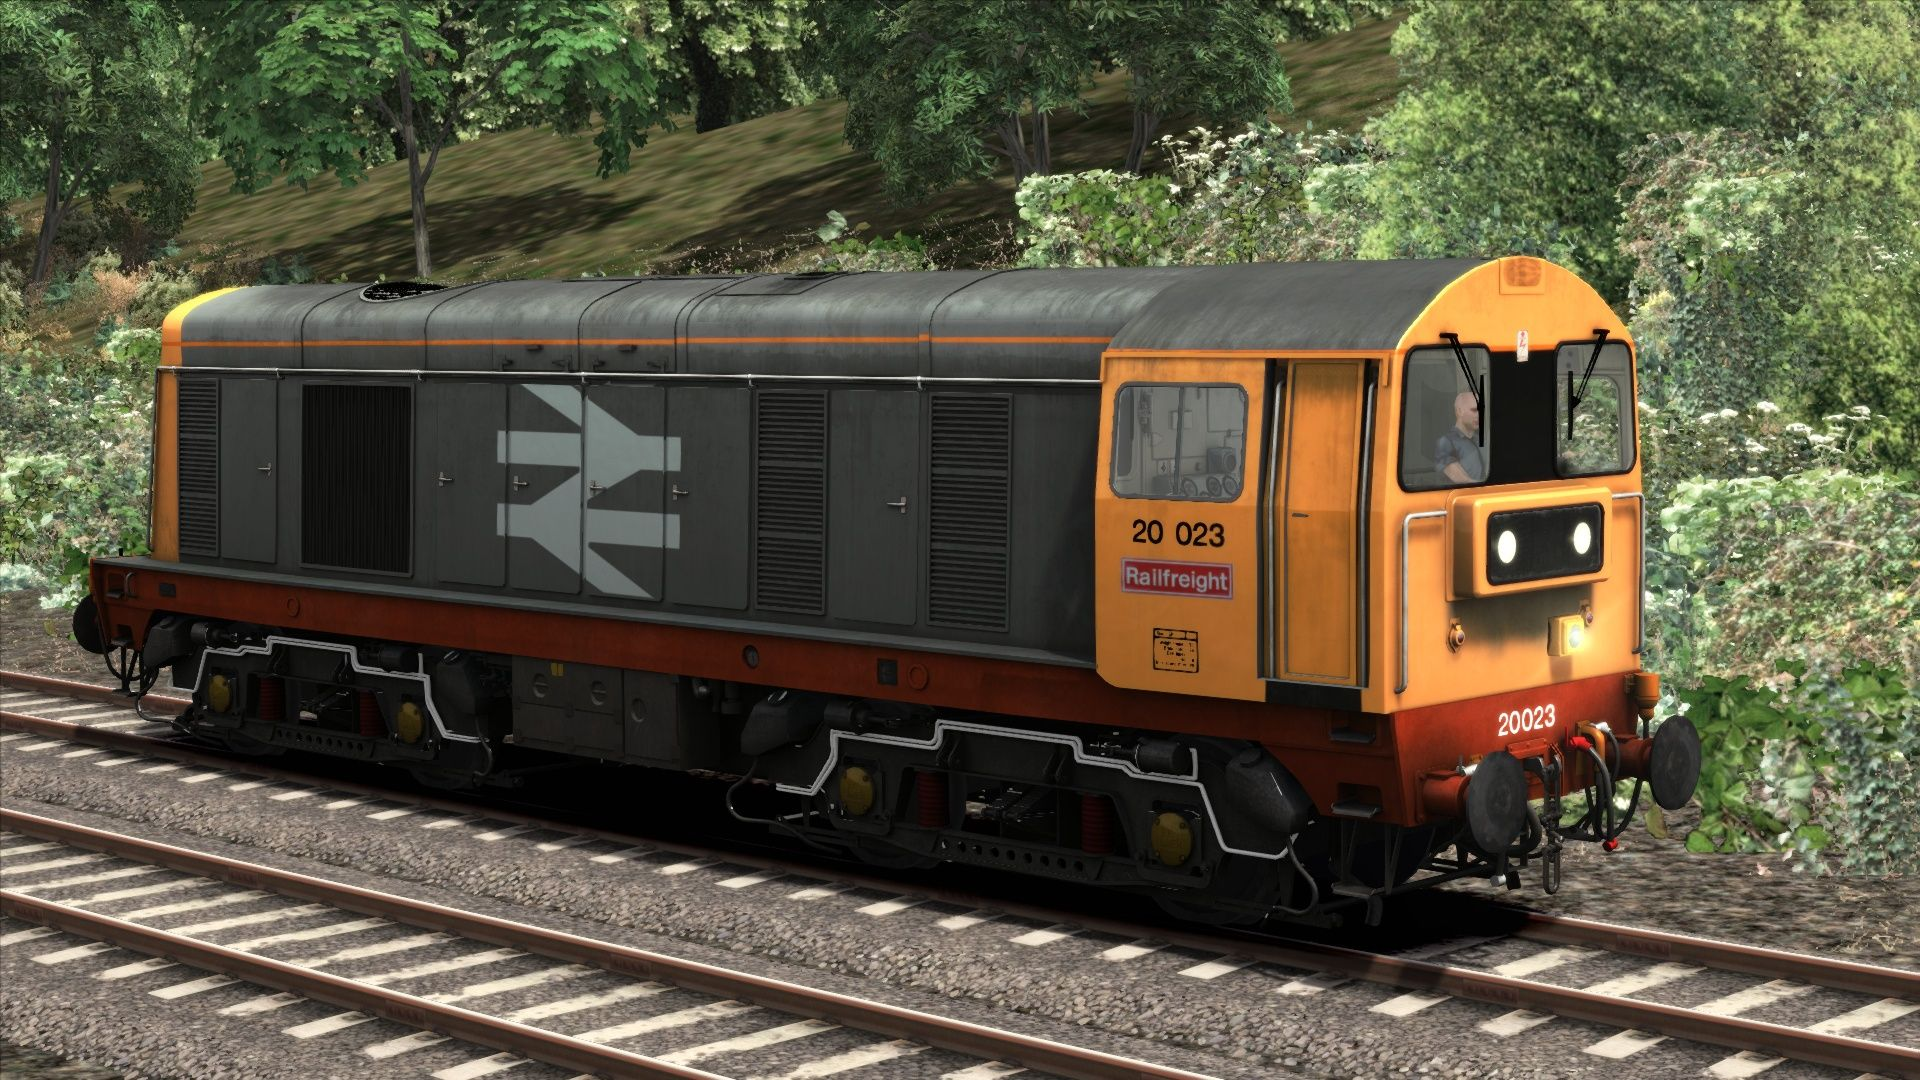 Image showing screenshot of the BR Railfreight Class 20 Add-On Livery on the TS Marketplace